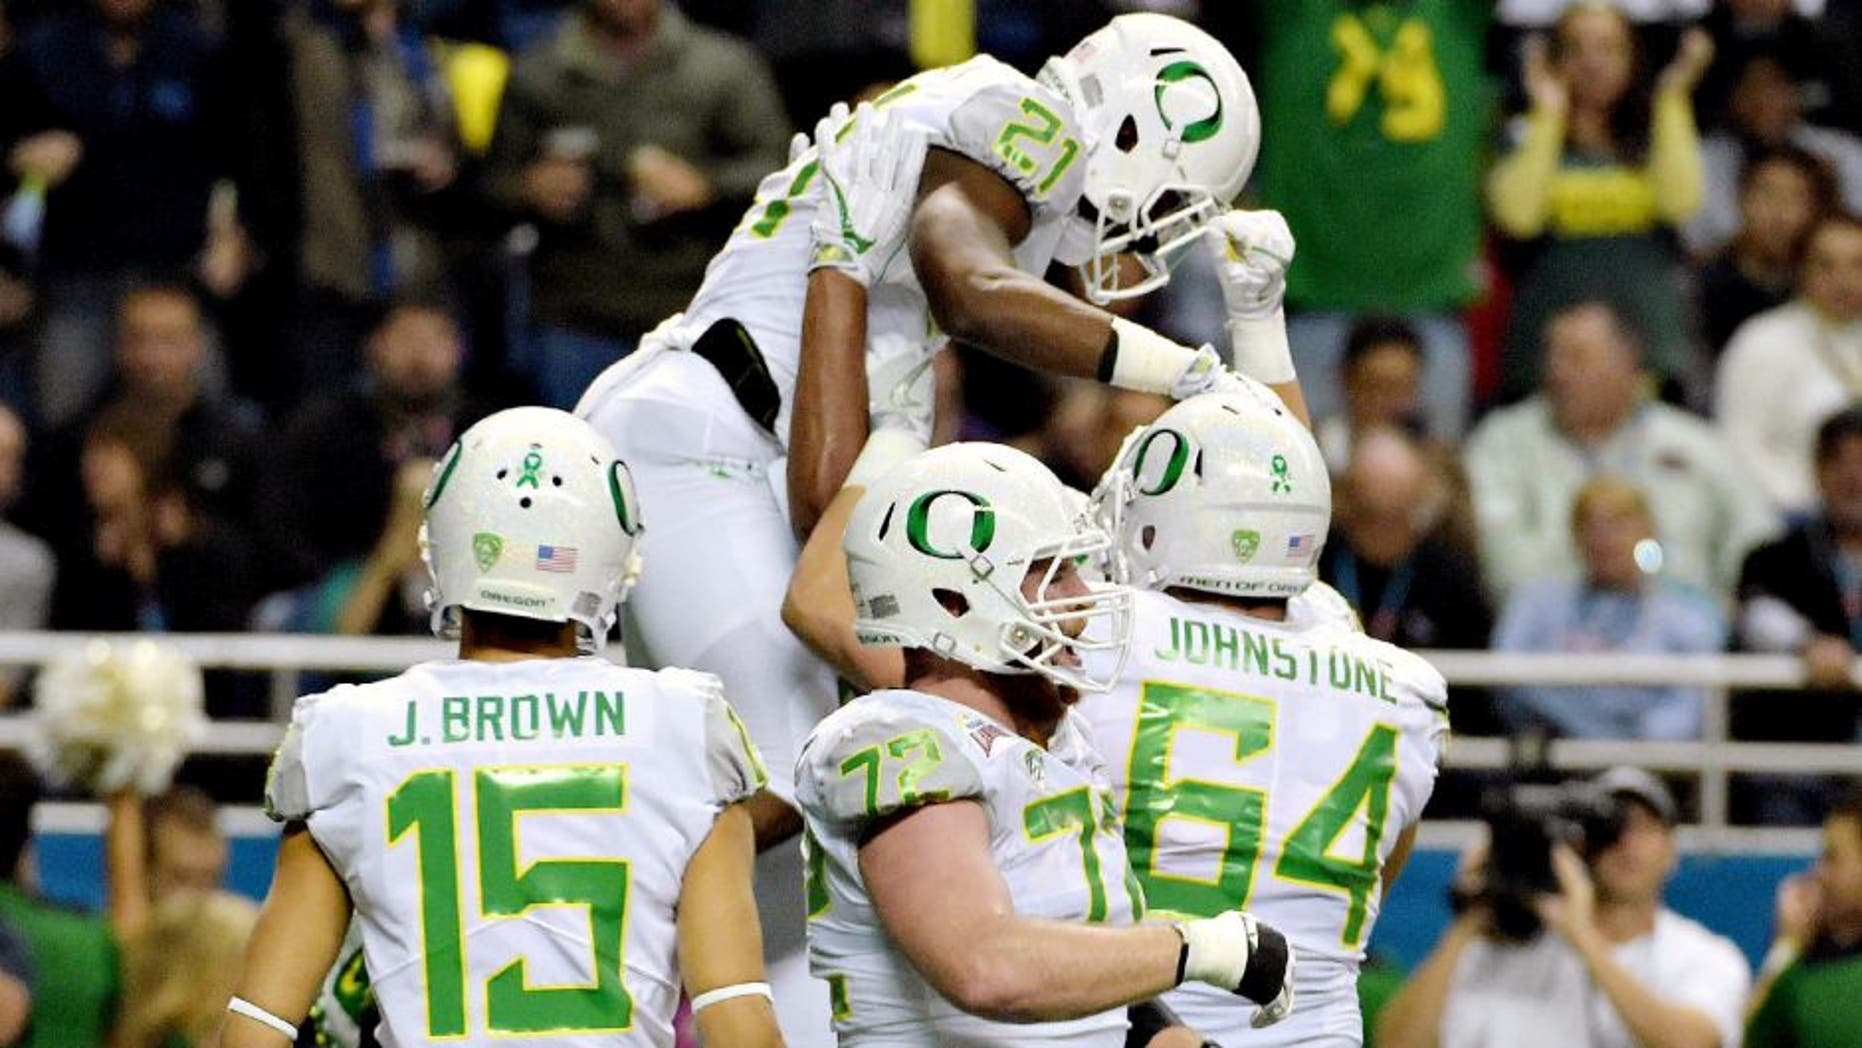 Jan 2, 2016; San Antonio, TX, USA; Oregon Ducks running back Royce Freeman (21) is hoisted by teammates after scoring on a 4-yard touchdown run against the TCU Horned Frogs during the 2016 Alamo Bowl at Alamodome. Mandatory Credit: Kirby Lee-USA TODAY Sports